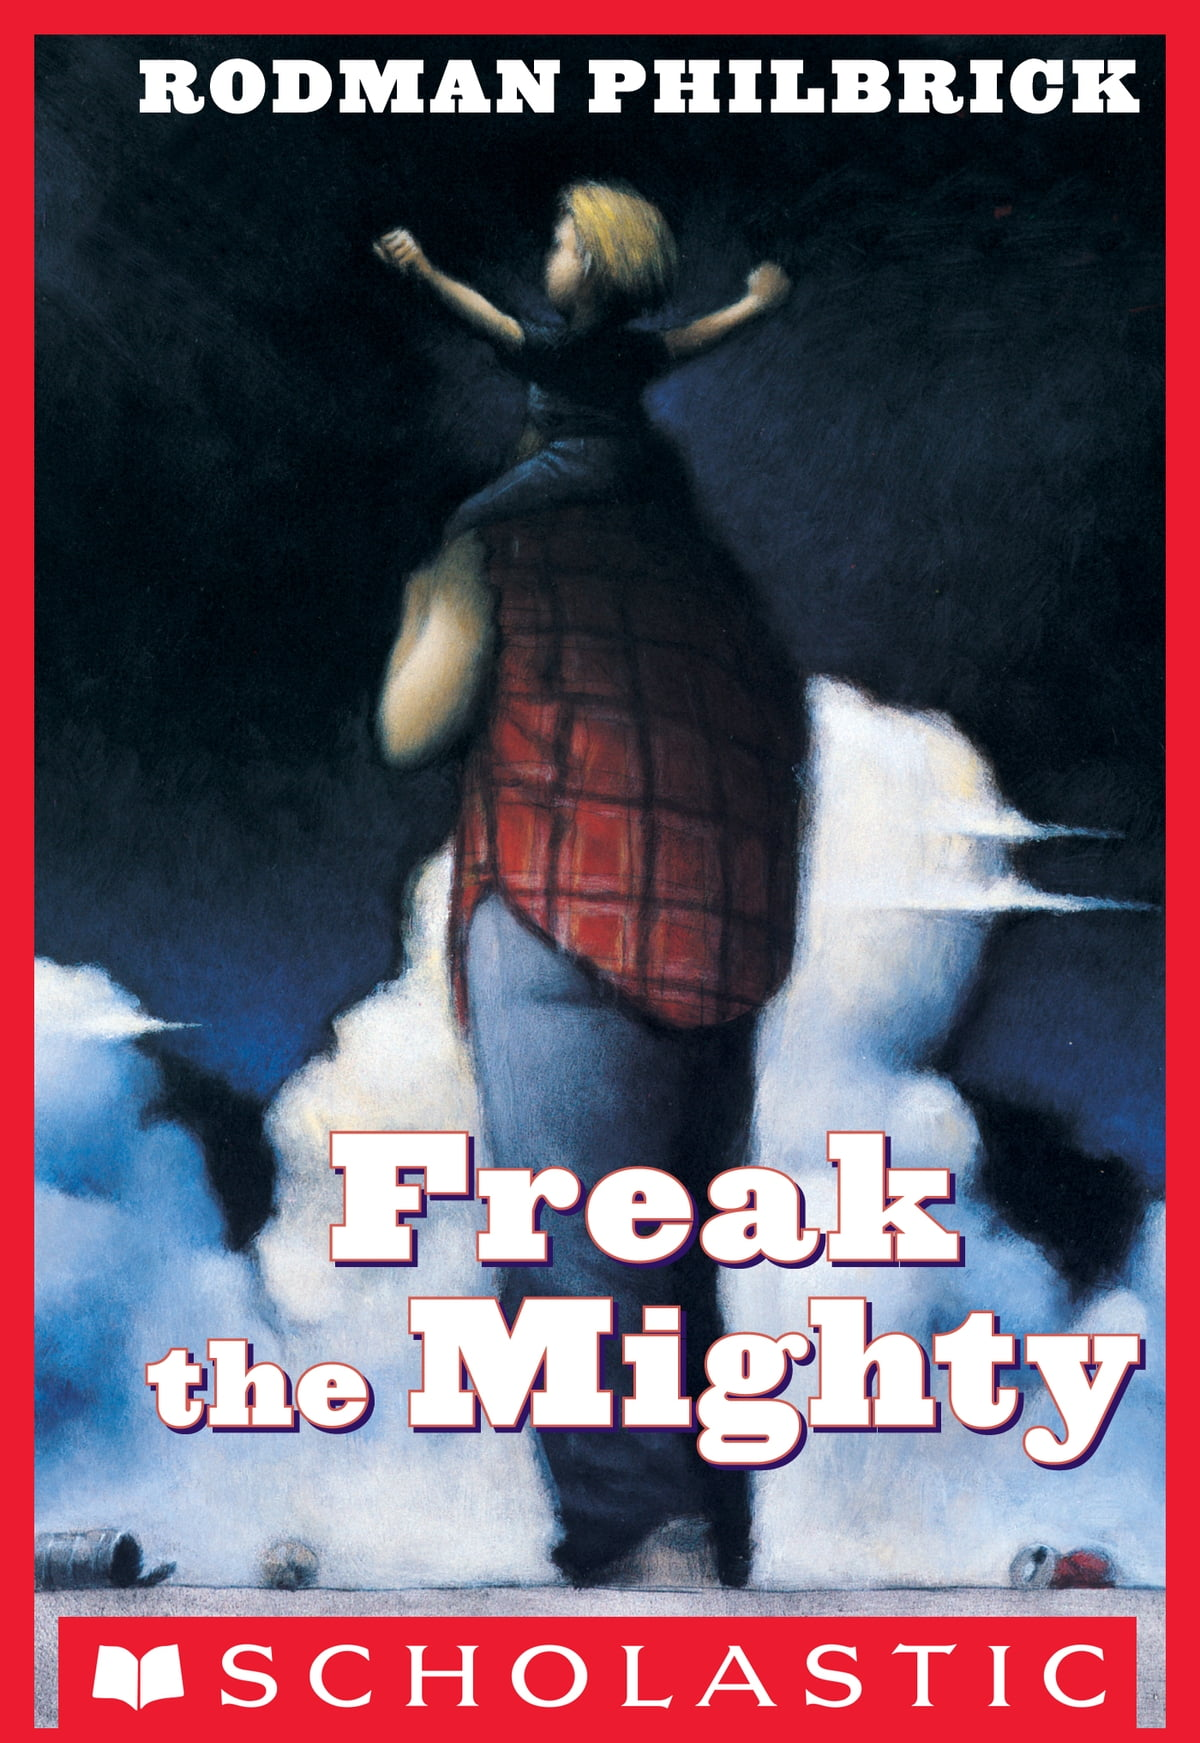 Freak The Mighty Ebook By Rodman Philbrick  9780545600279  Rakuten Kobo